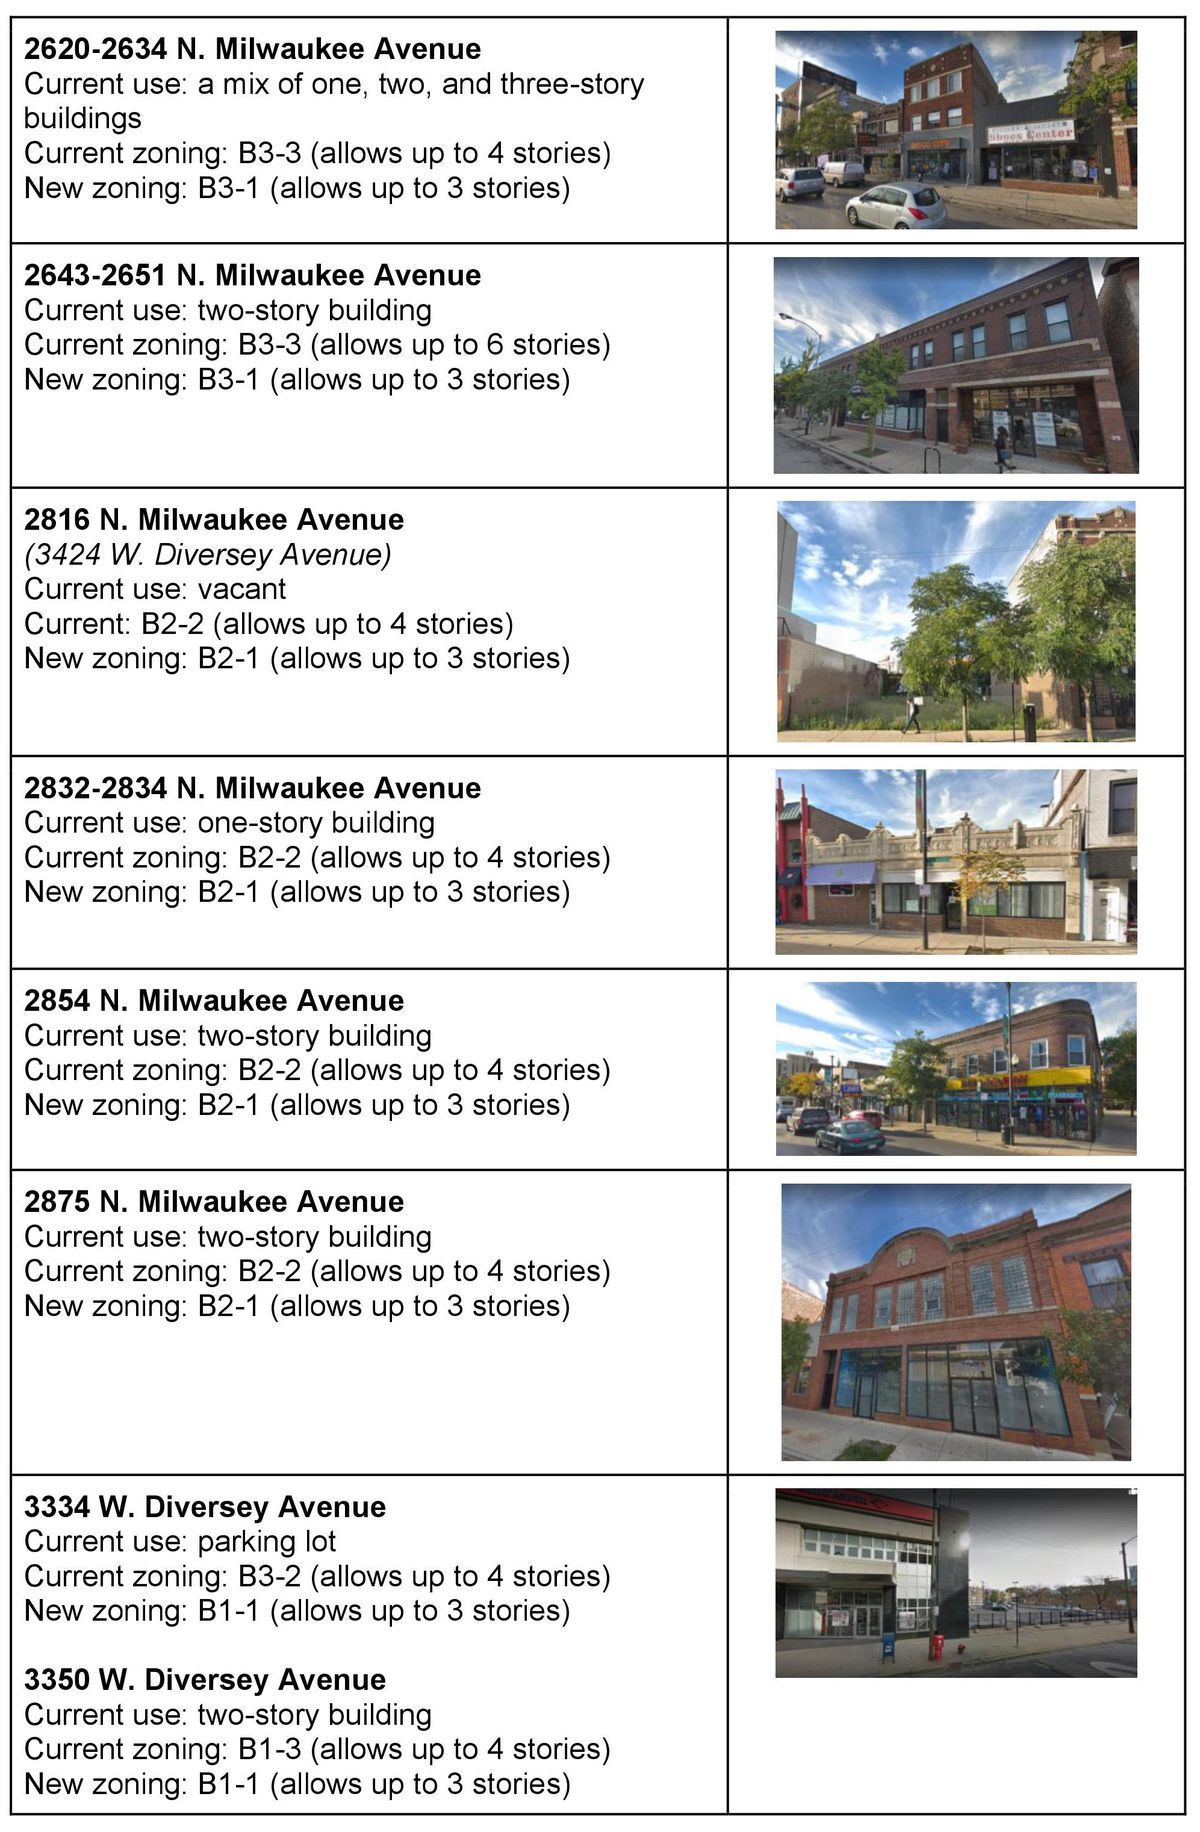 A graphic showing street-level images of two and three-story buildings at 2620-2634 N. Milwaukee, 2643-2651 N. Milwaukee, 2816 N. Milwaukee, 2832-2834 N. Milwaukee, 2854 N. Milwaukee, 2875 N. Milwaukee, 3334 W. Diversey, and 3350 Diversey avenues.